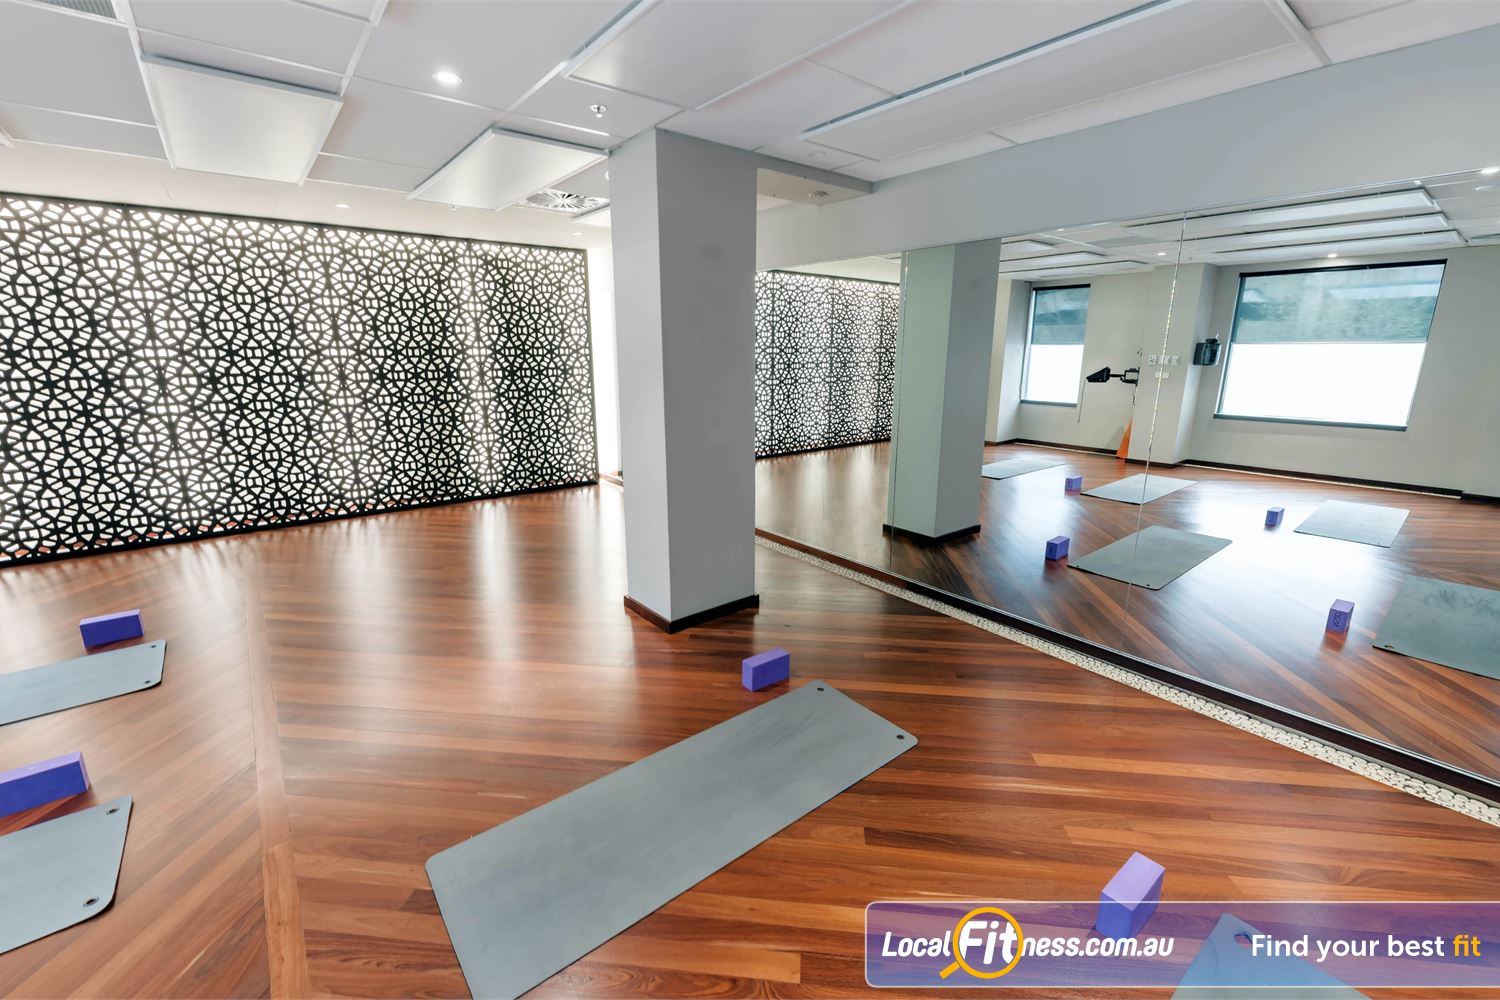 Fitness First Elizabeth Plaza Near Waverton One of our defining features, our dedicated North Sydney HOT Yoga studio.